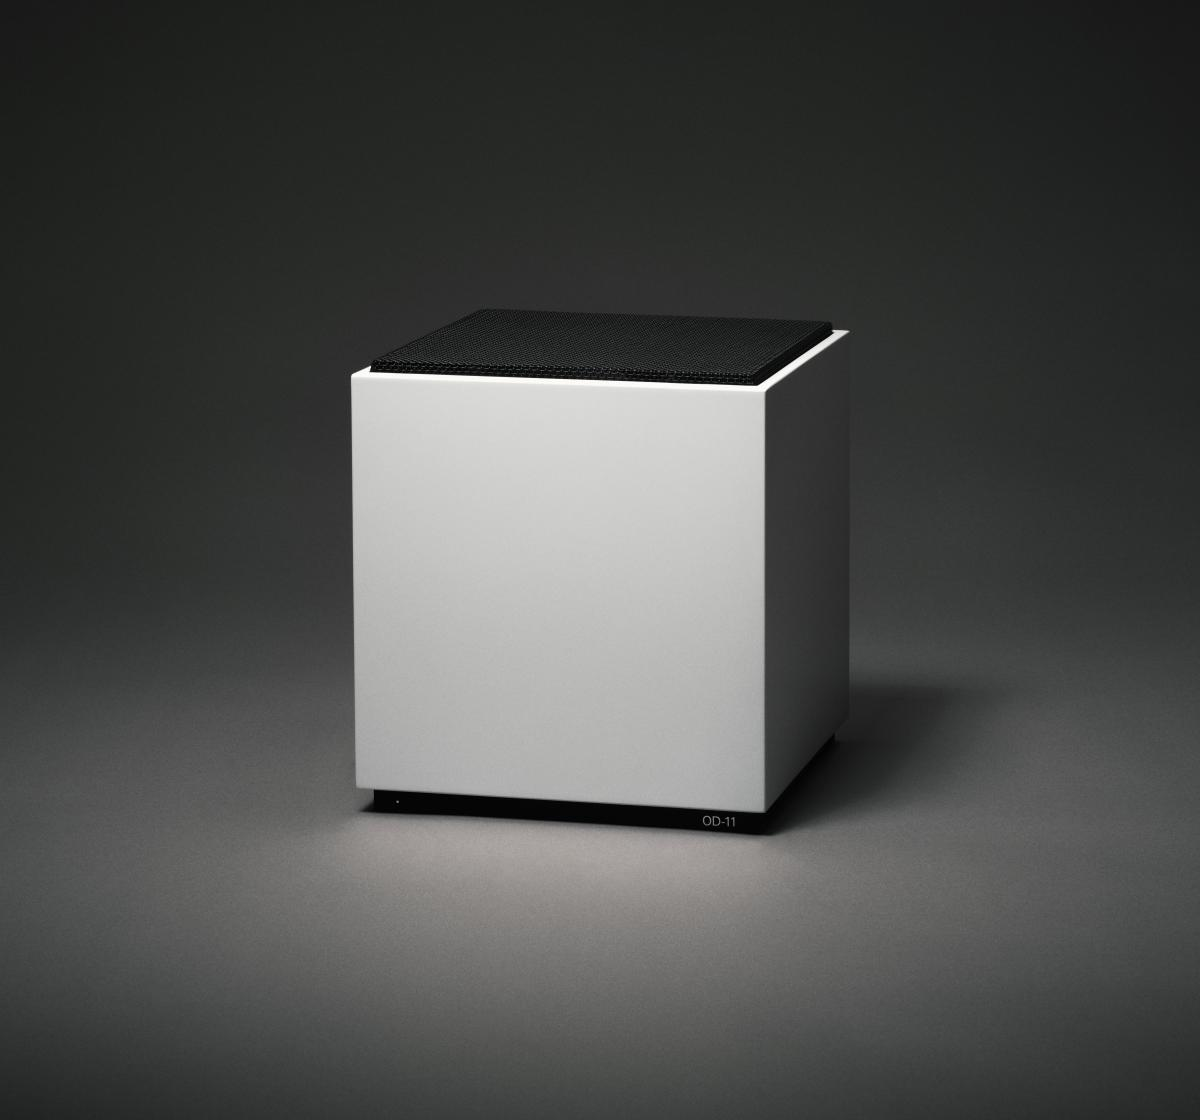 The OD-11 Cloud Speaker with Wireless Remote